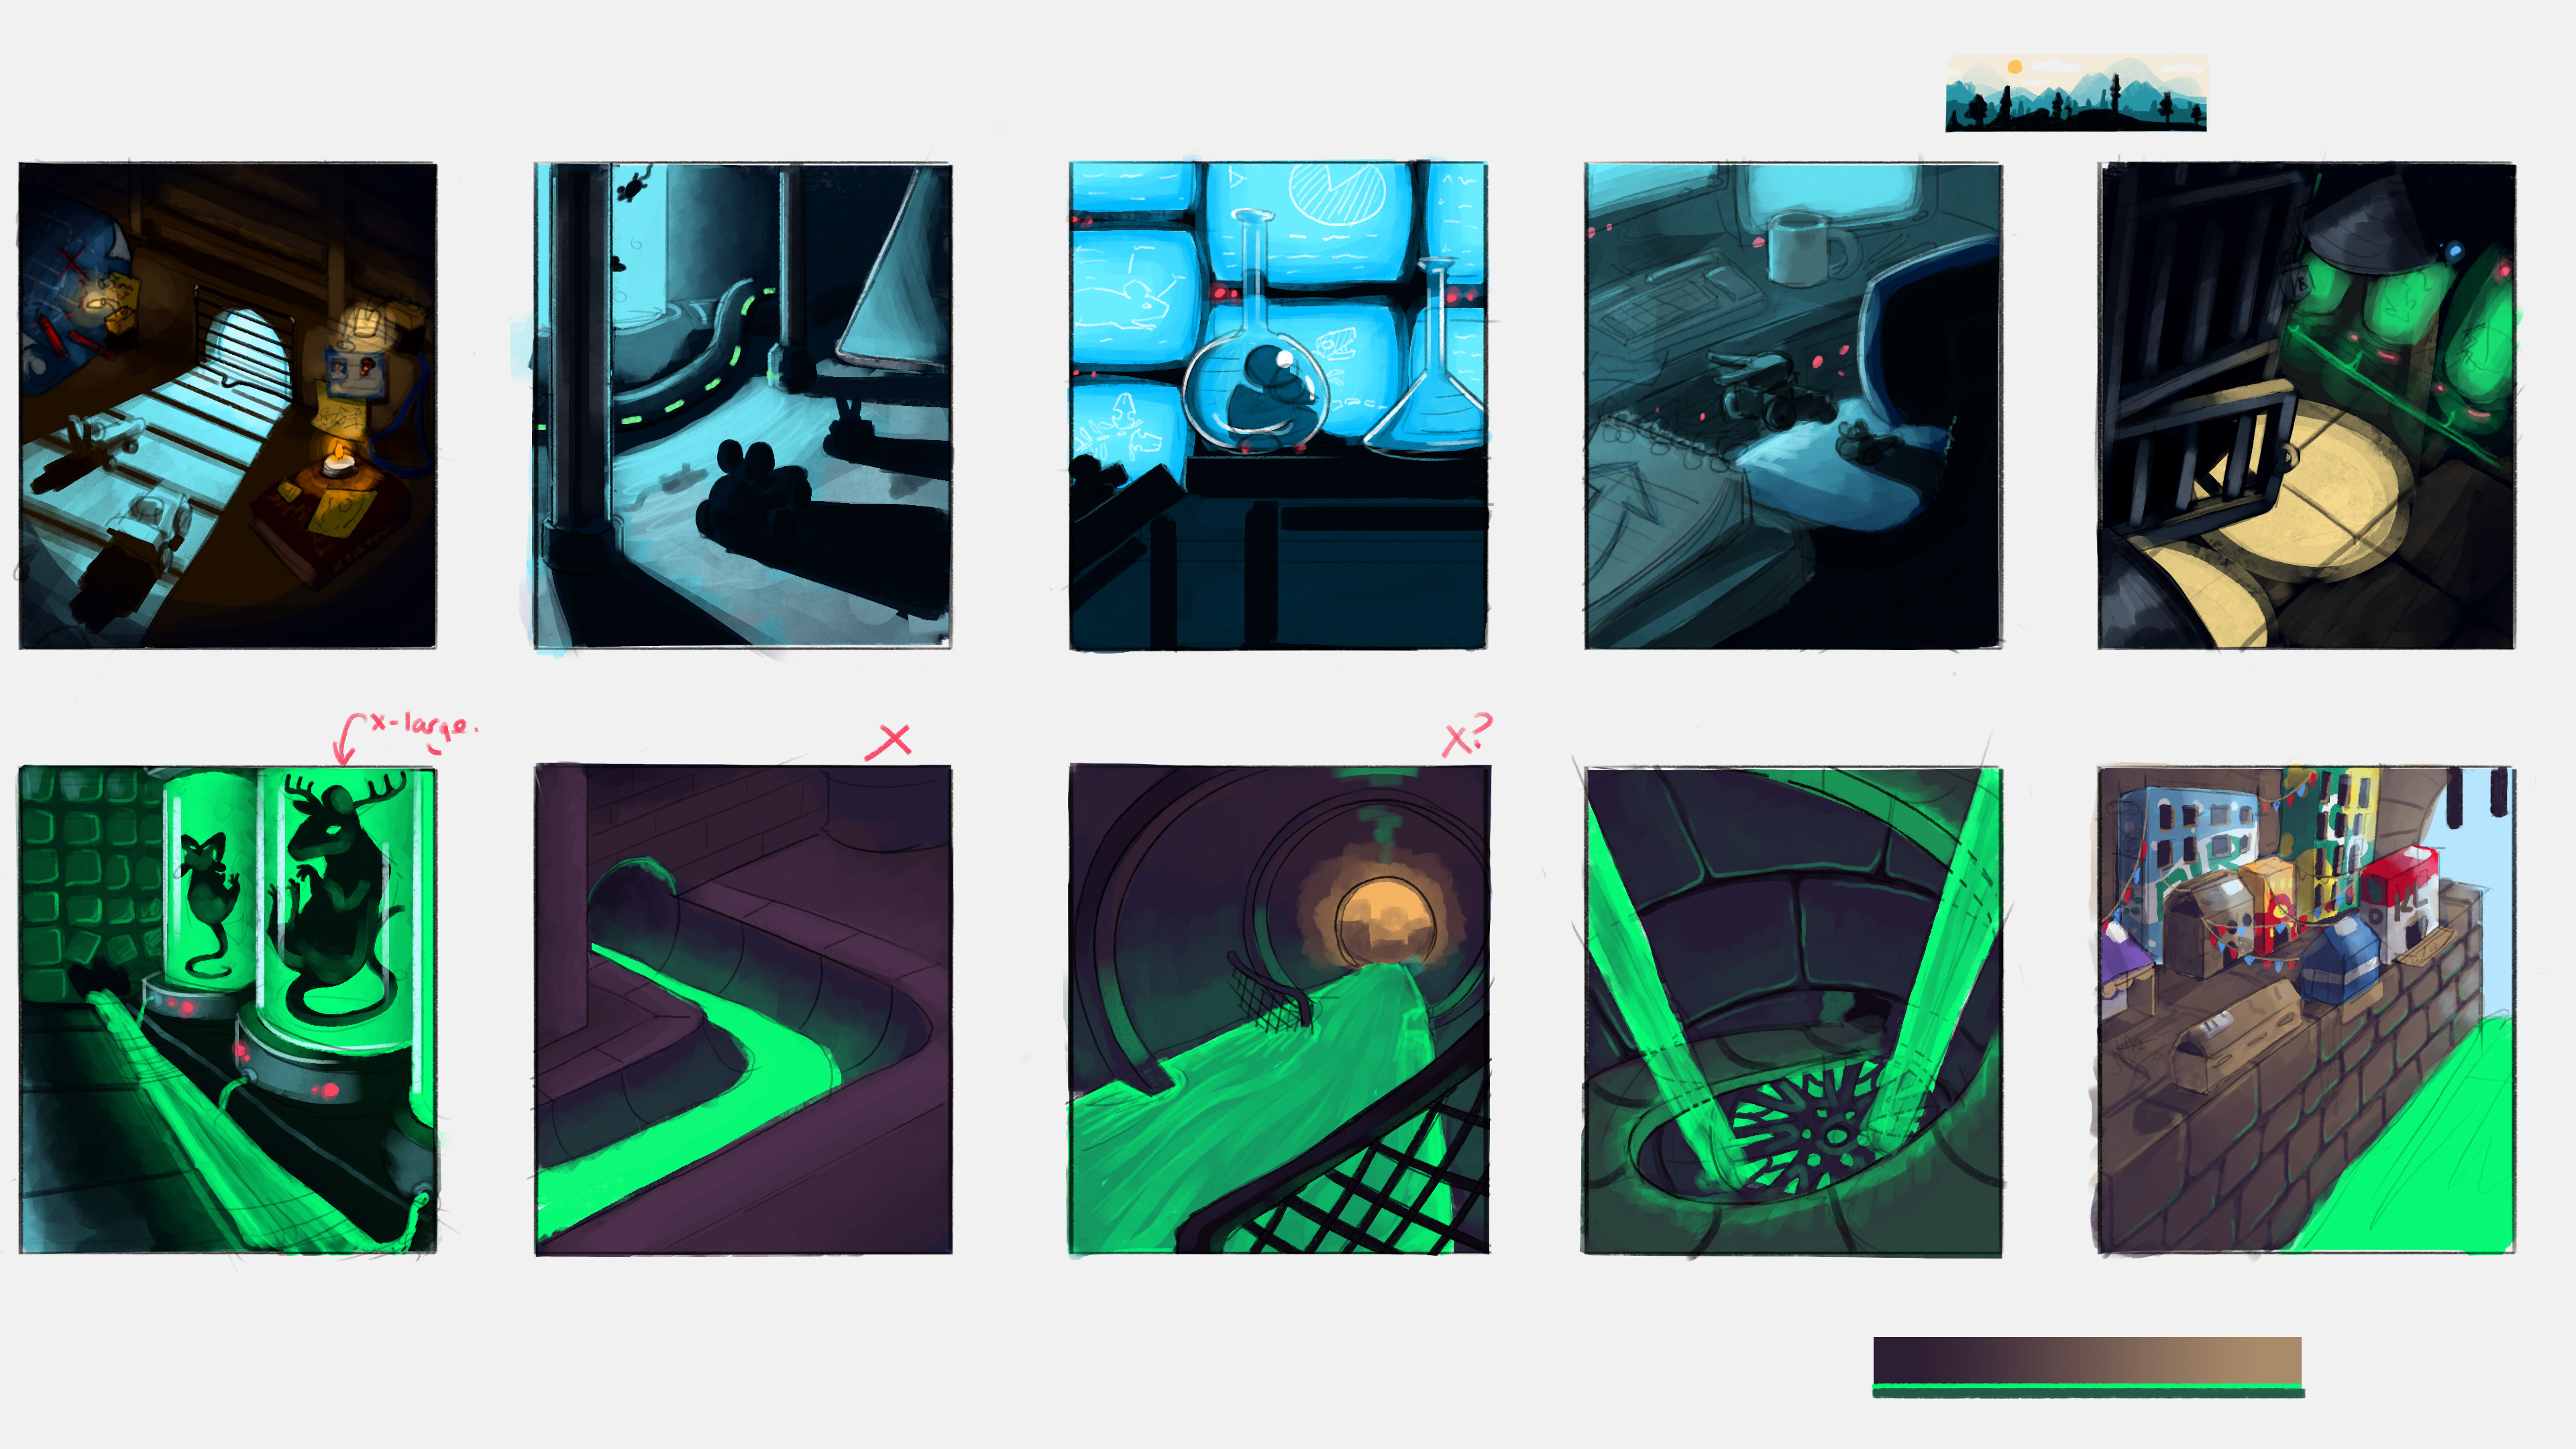 Mini-storyboard, trying to capture the overall feel and colour journey throughout the race track.